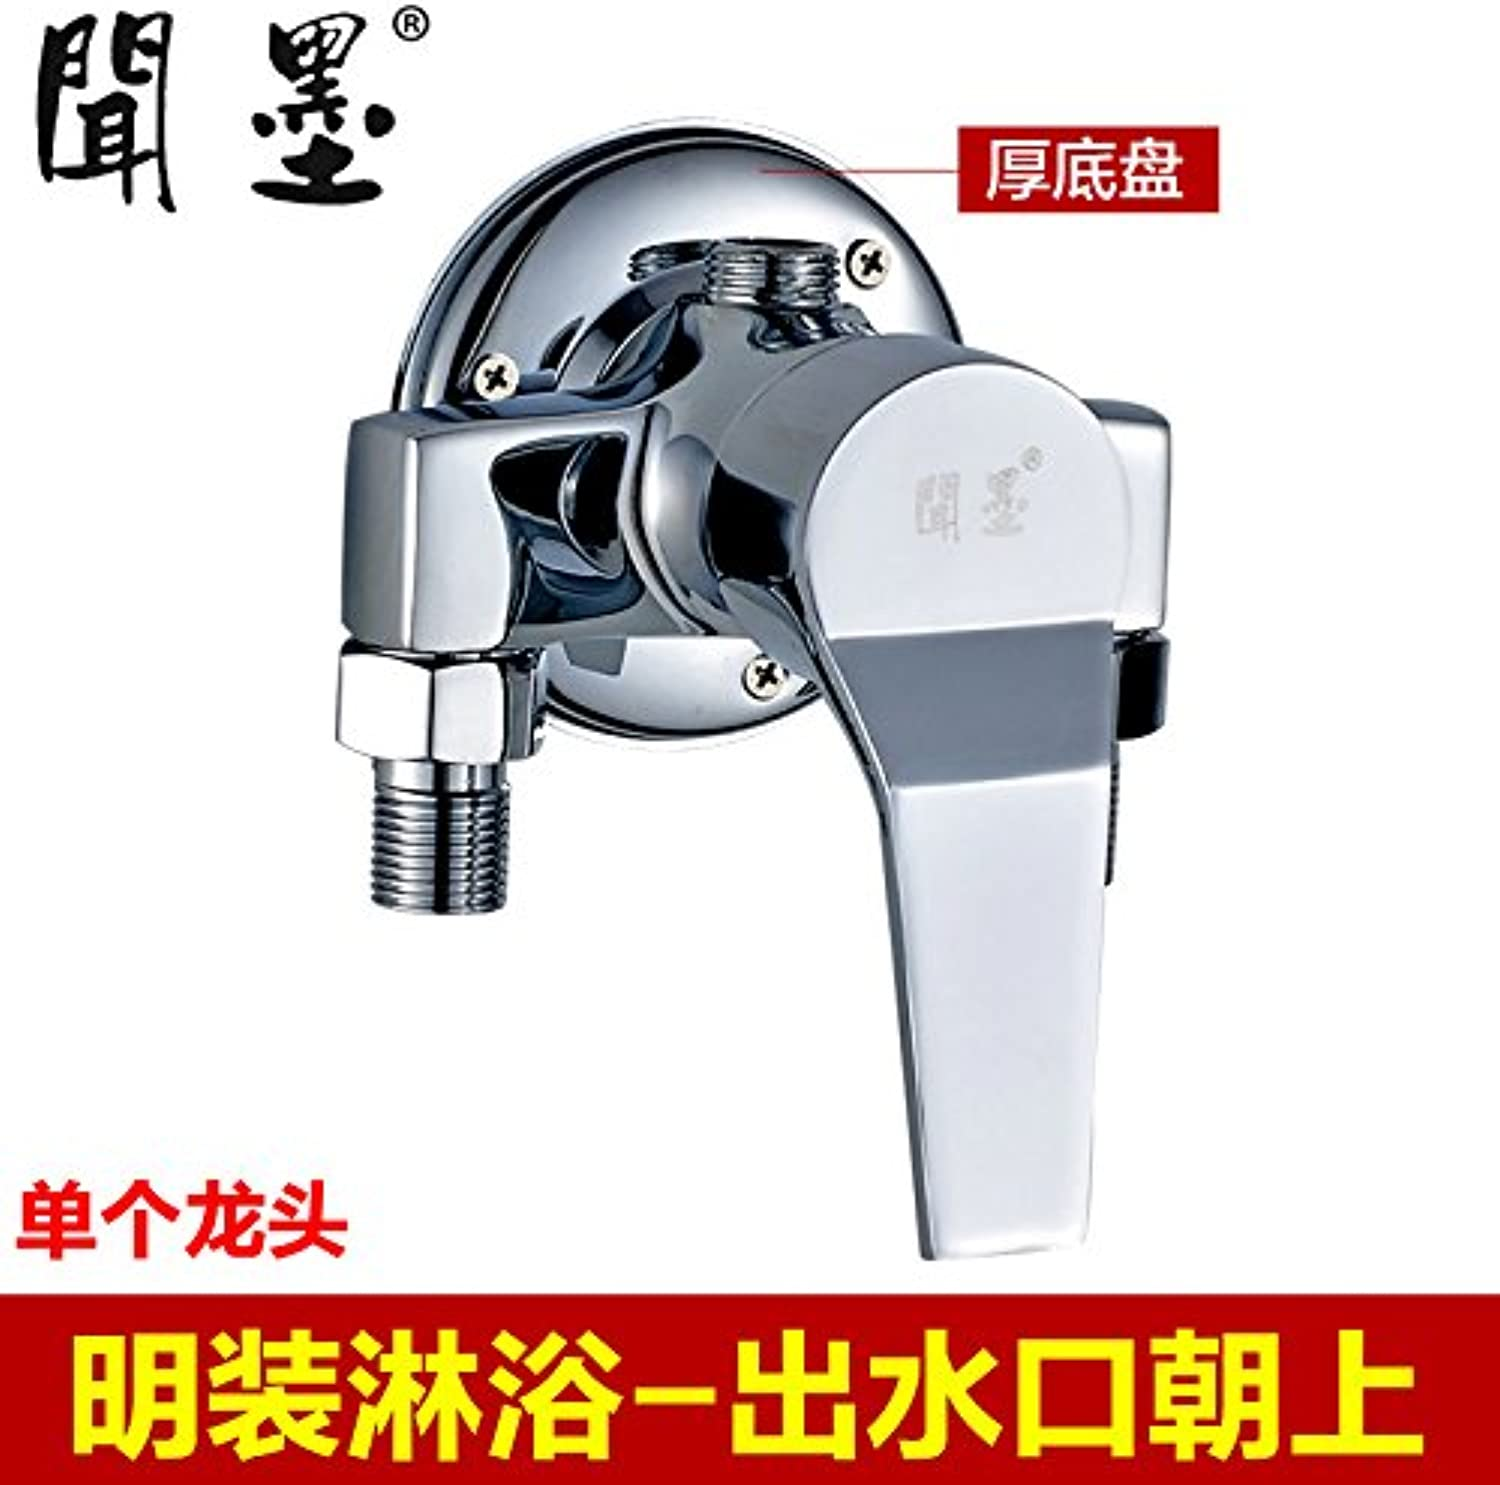 Gyps Faucet Kitchen Faucet Handle Stainless Steel Sink Tap Water Mixer Valve in the Shower Full of Copper in the Shower Pack Hot and Cold Shower Mixer Valve in the Water